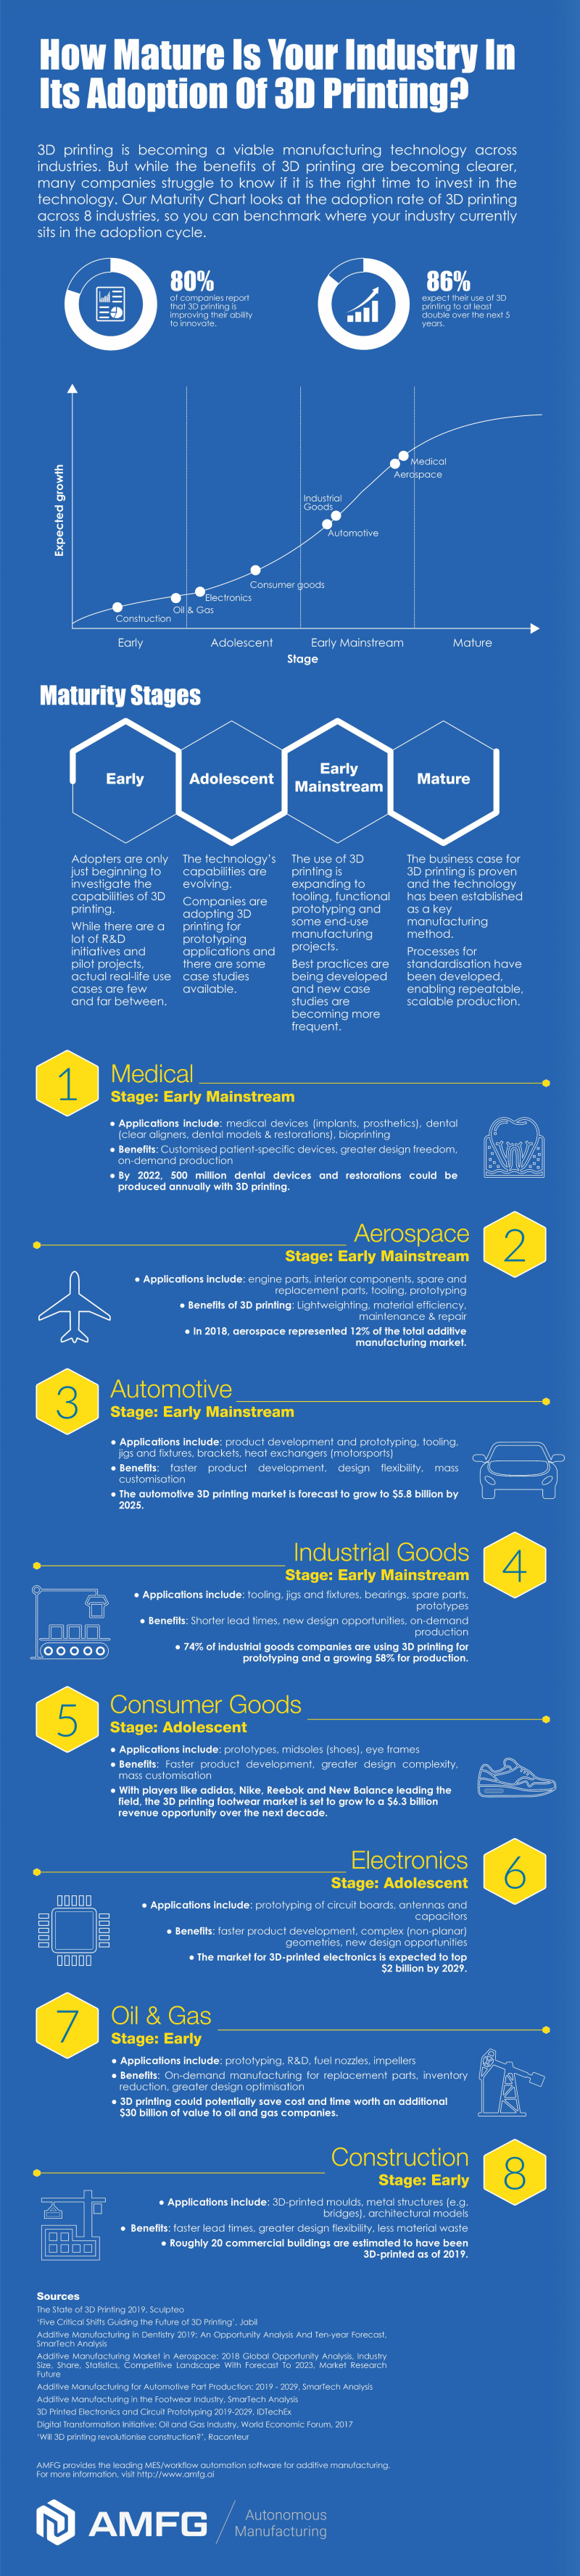 3D Printing Industry Adoption Infographic